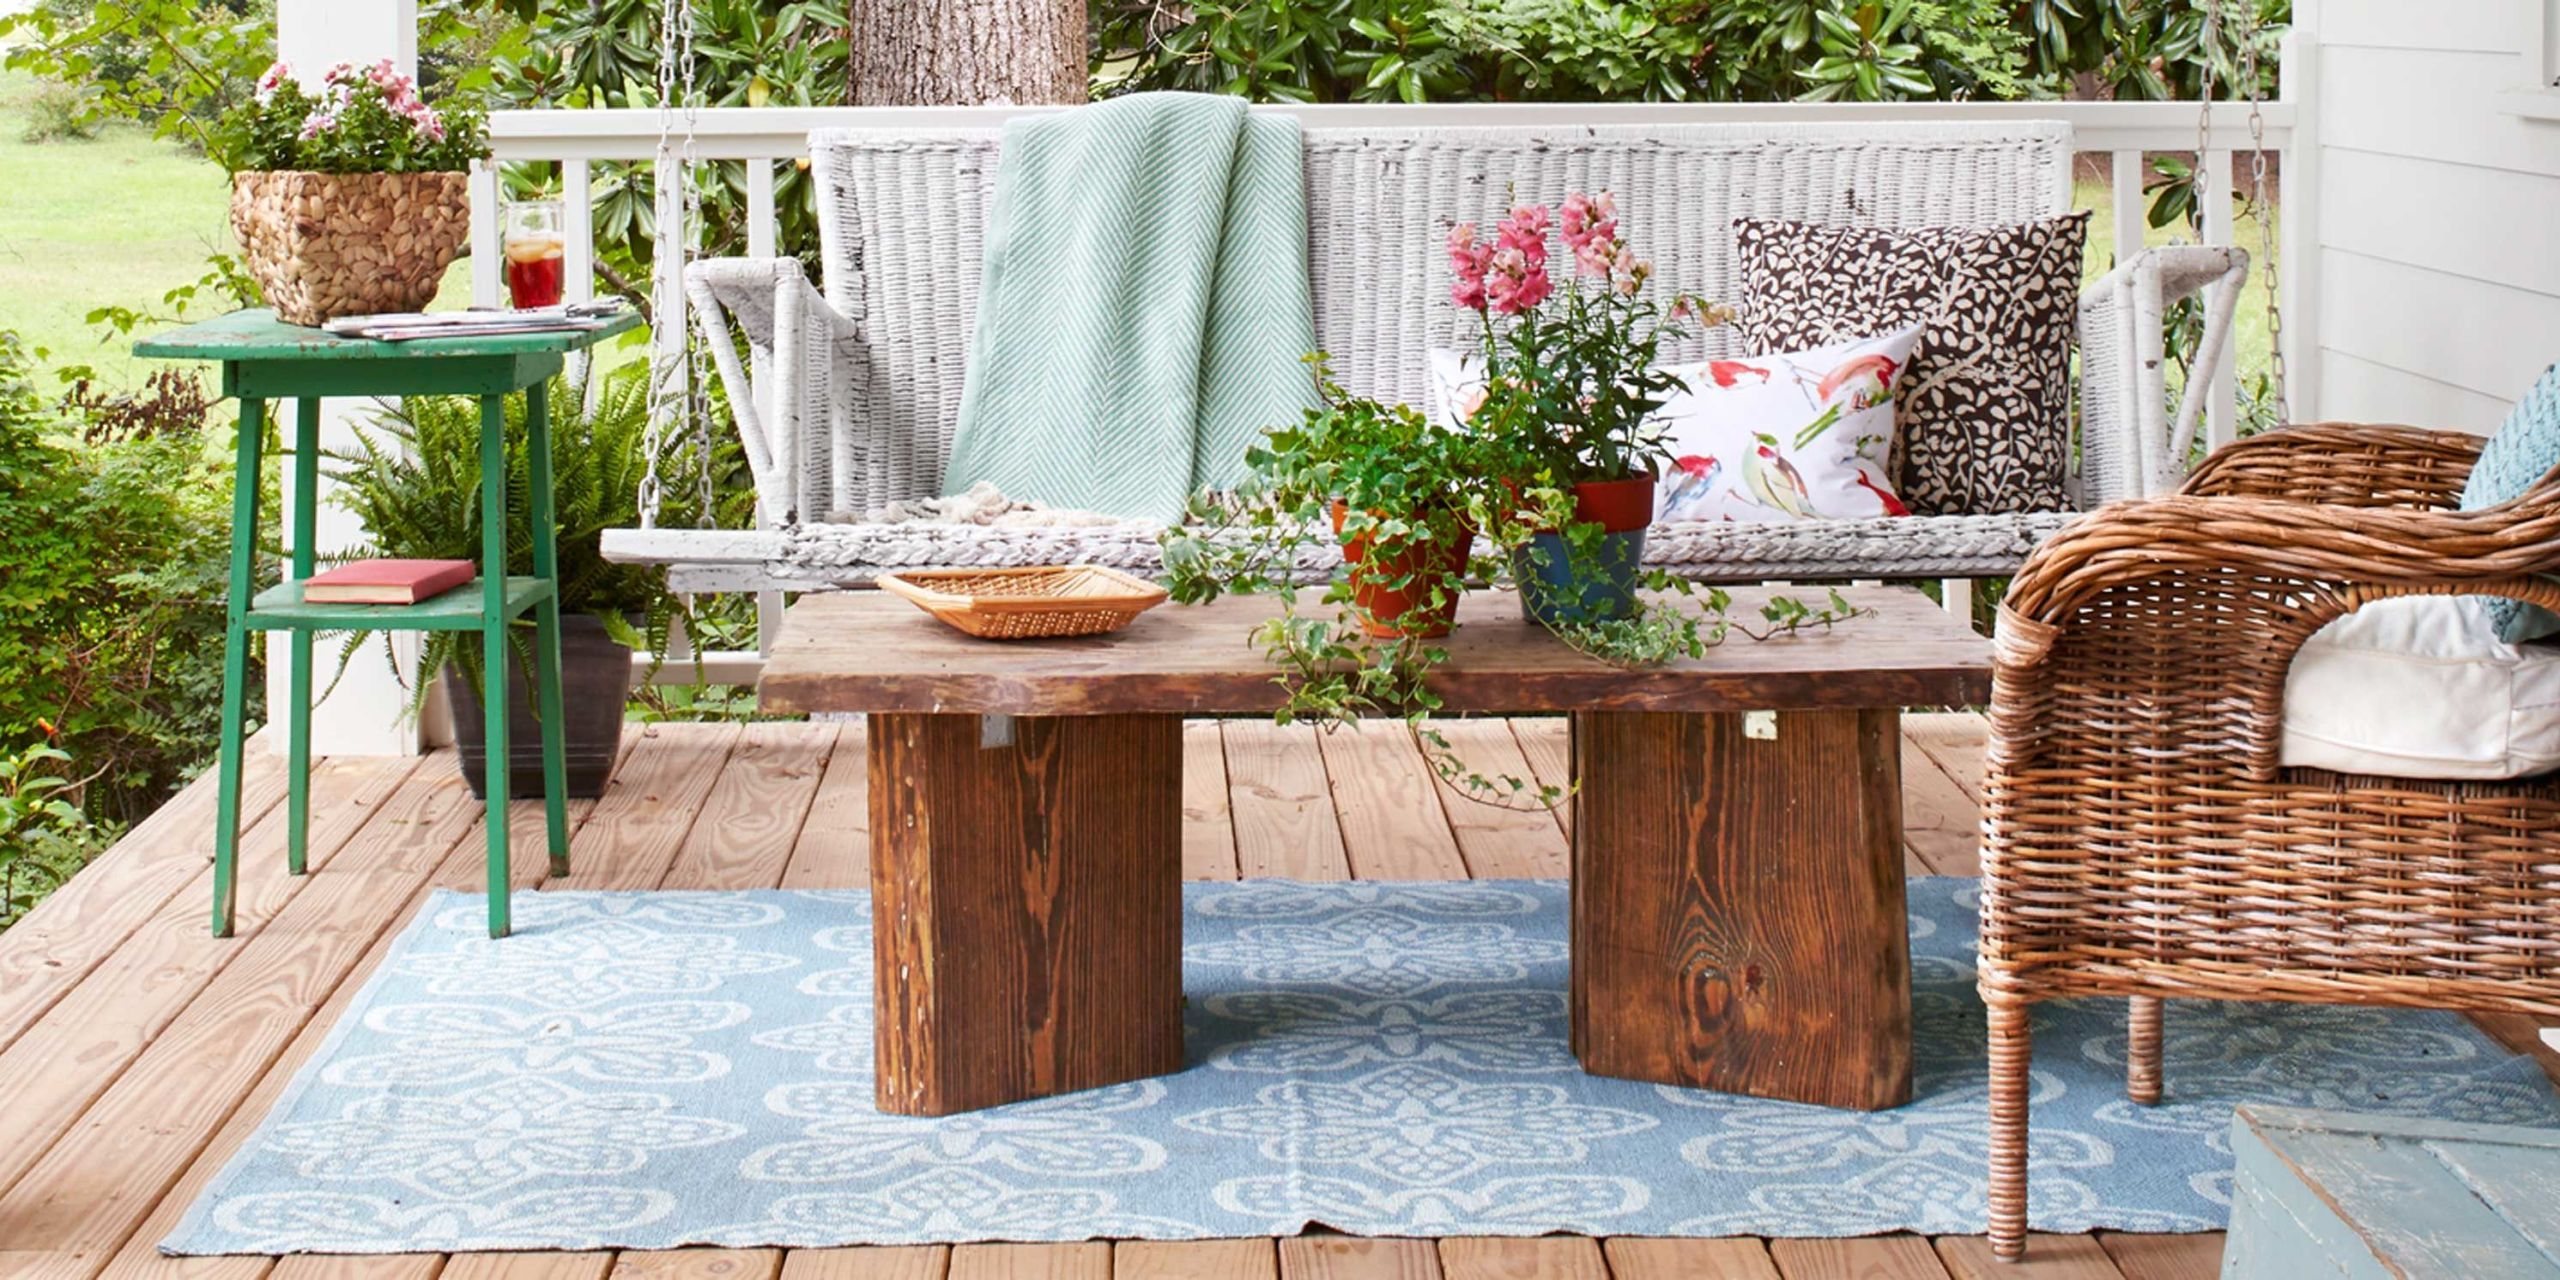 60 best patio designs for 2018 ideas for front porch and patio rh countryliving com outdoor patio furniture decorating ideas outdoor table top decorating ideas